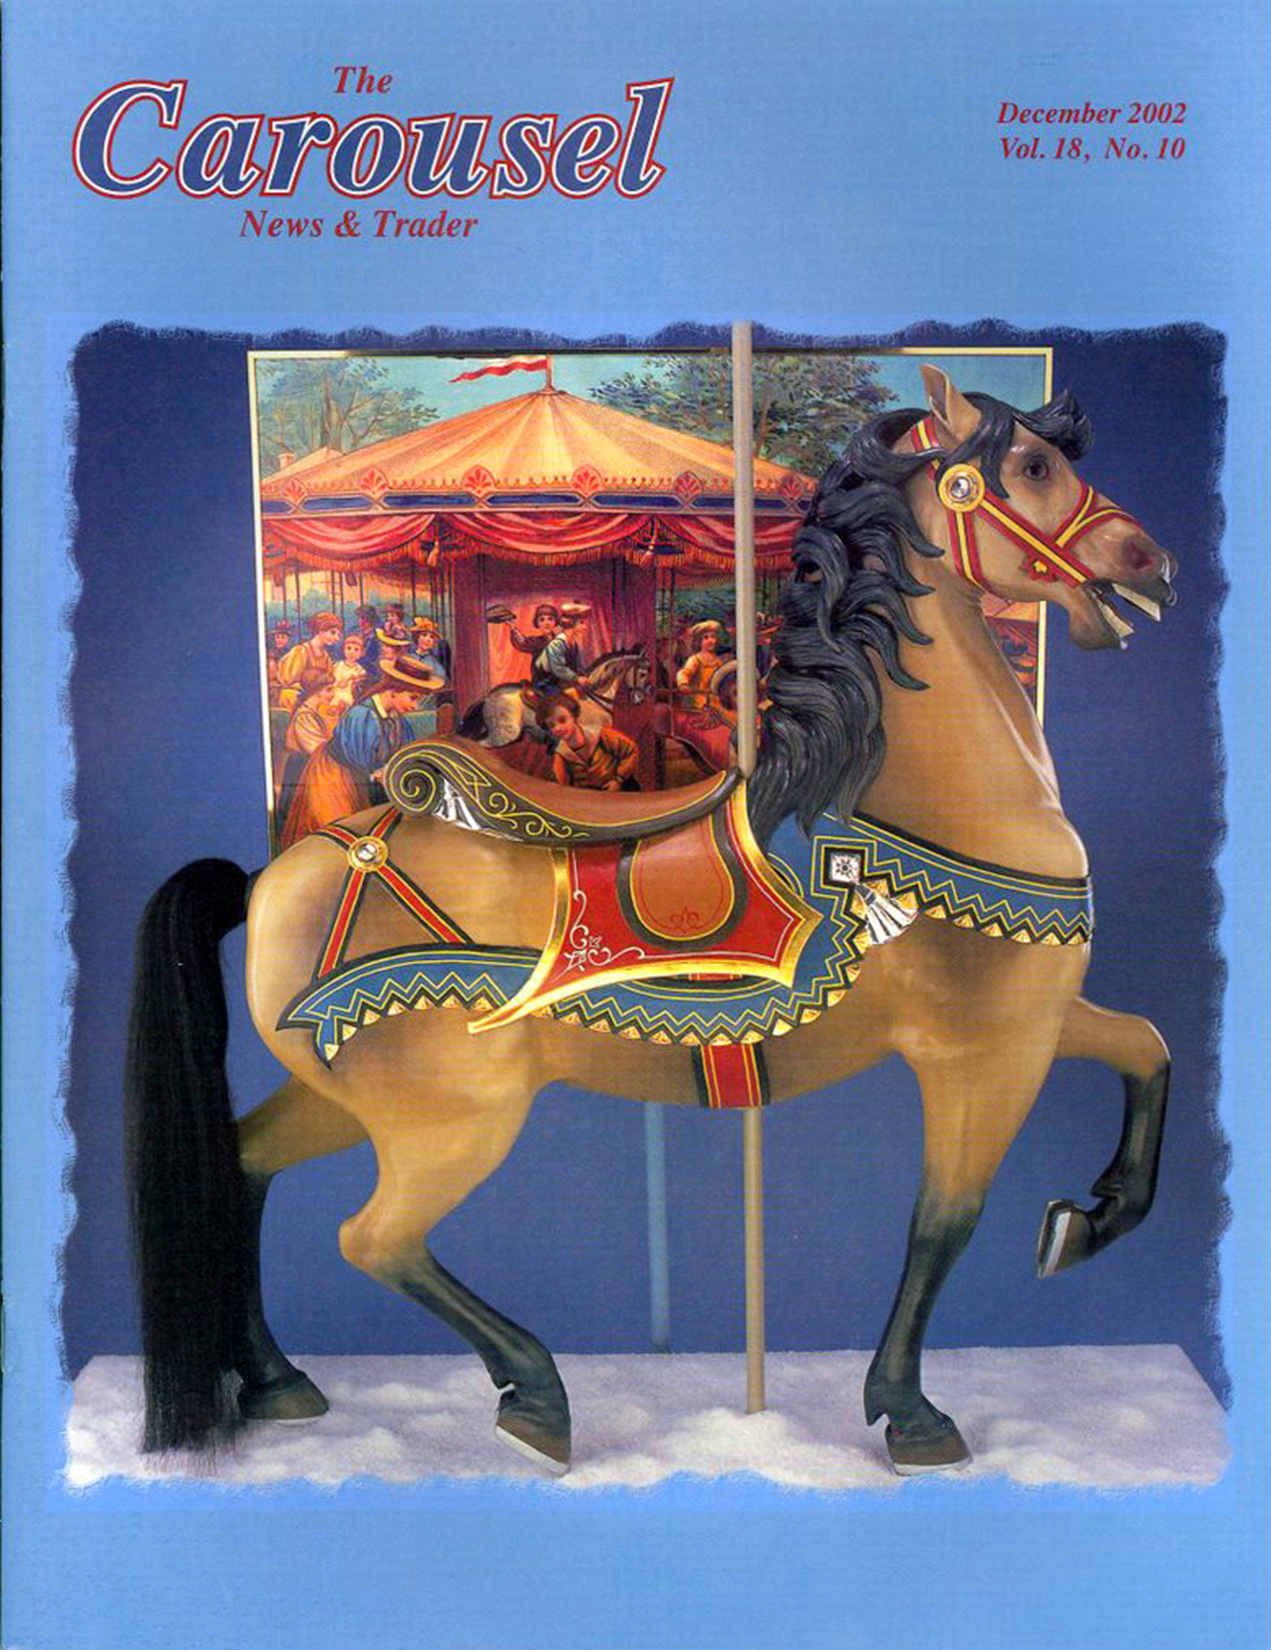 cnt_12_2002-Ca-1890-Dentzel-carousel-horse-Tony-Orlando-16th-holiday-cover